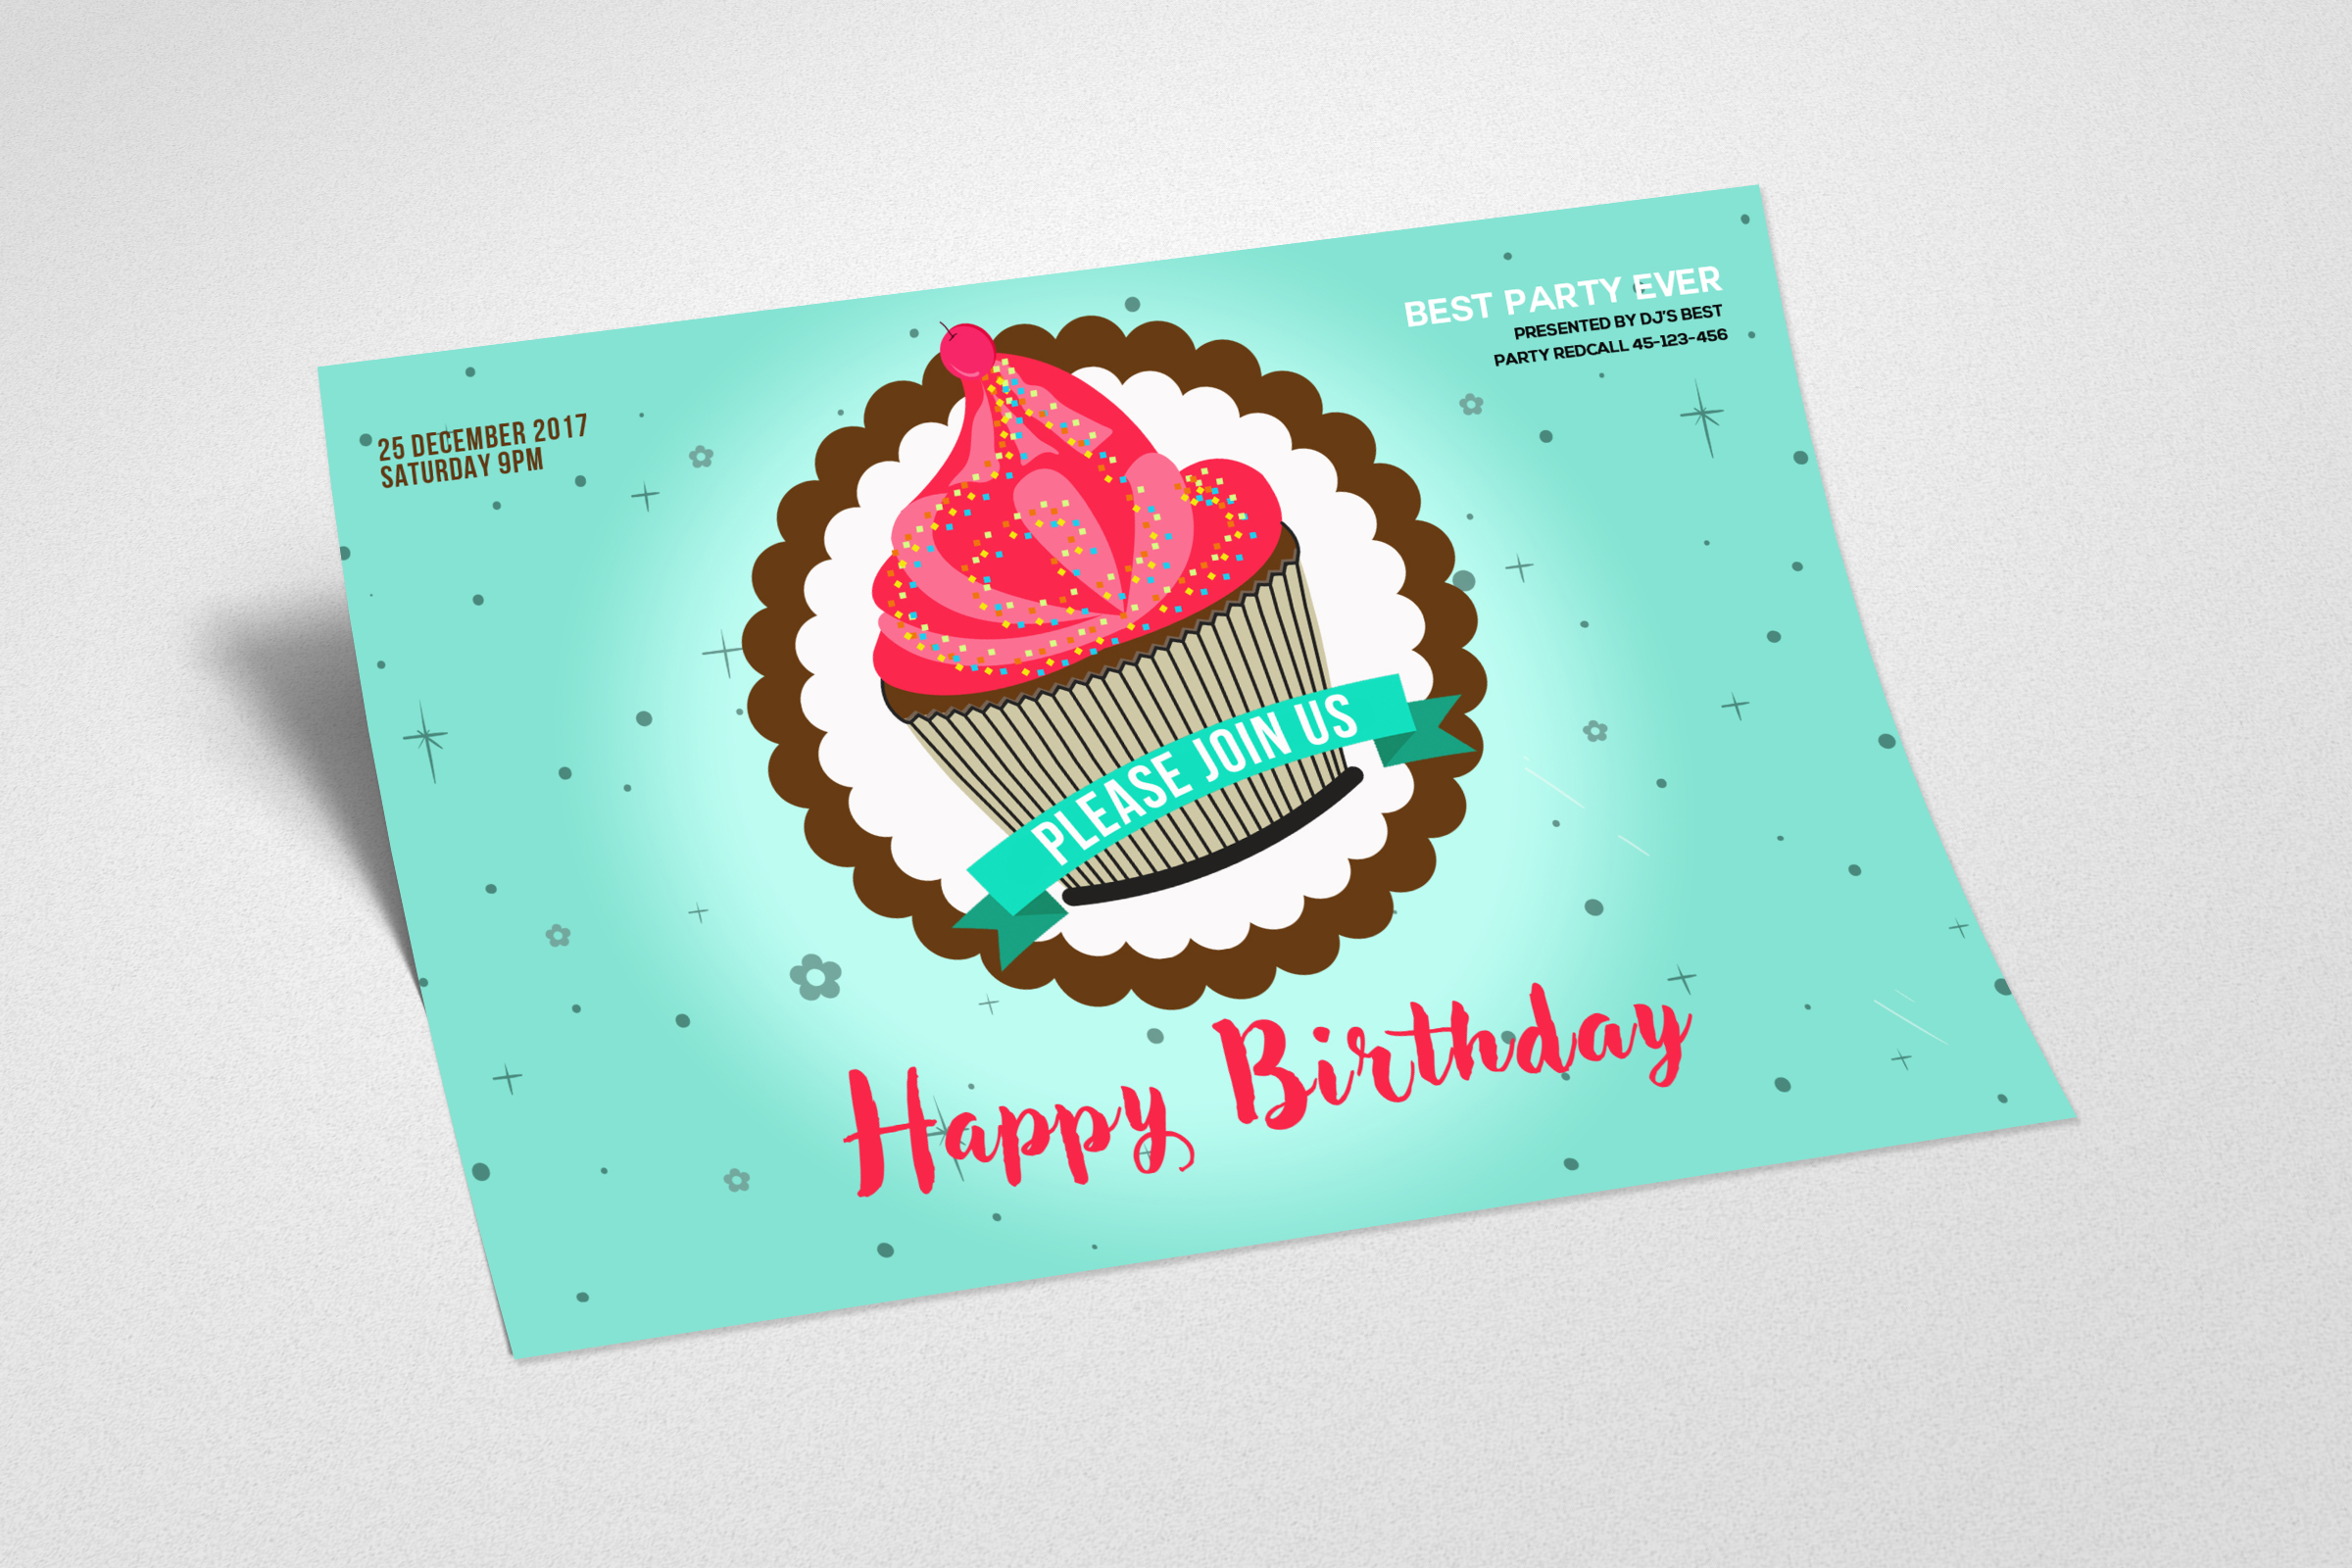 Birthday Greeting Card Template example image 2